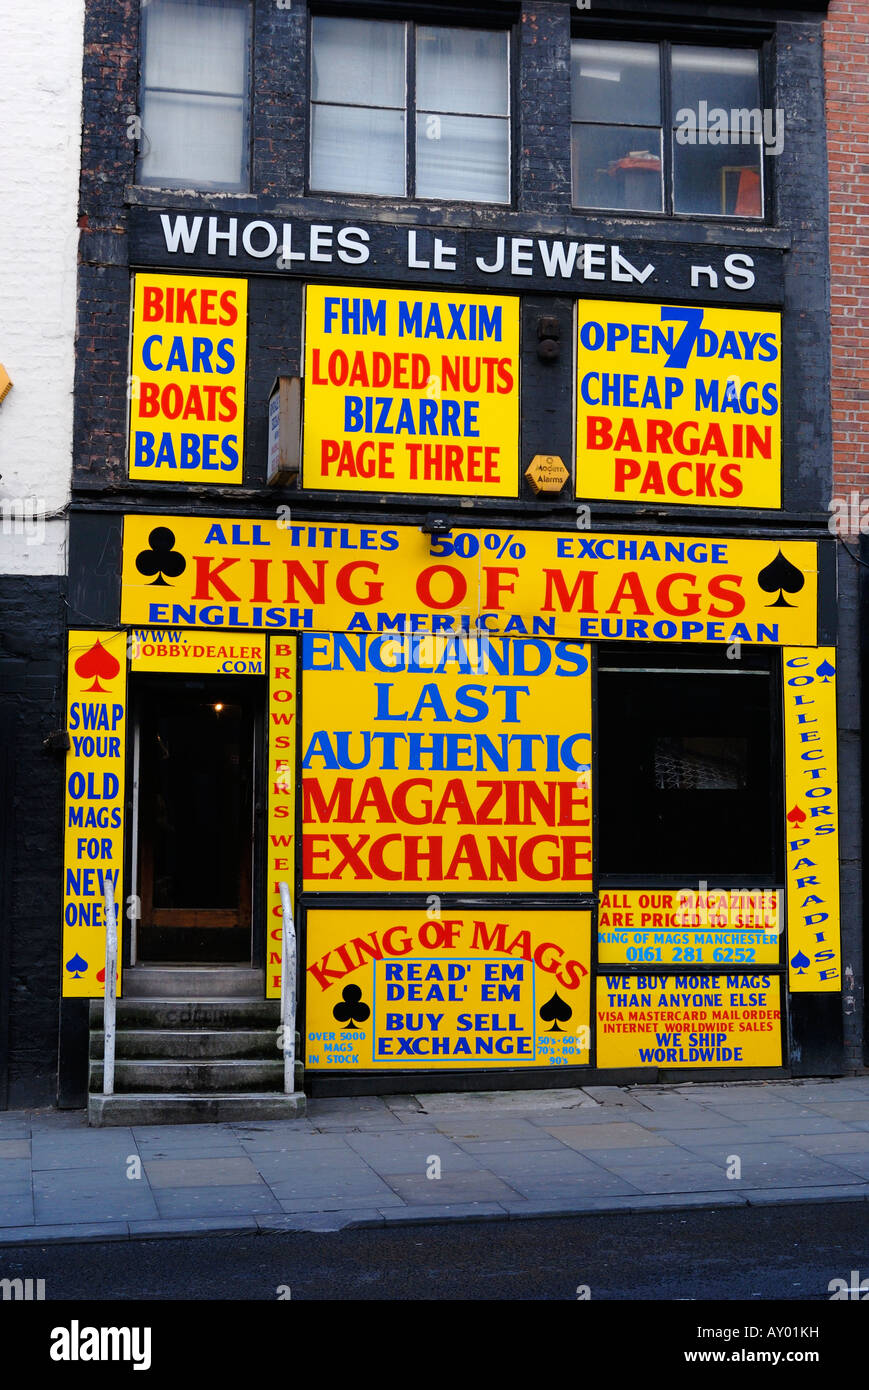 Magazine exchange shop and trader on Shude Hill in manchester, northwest England - Stock Image